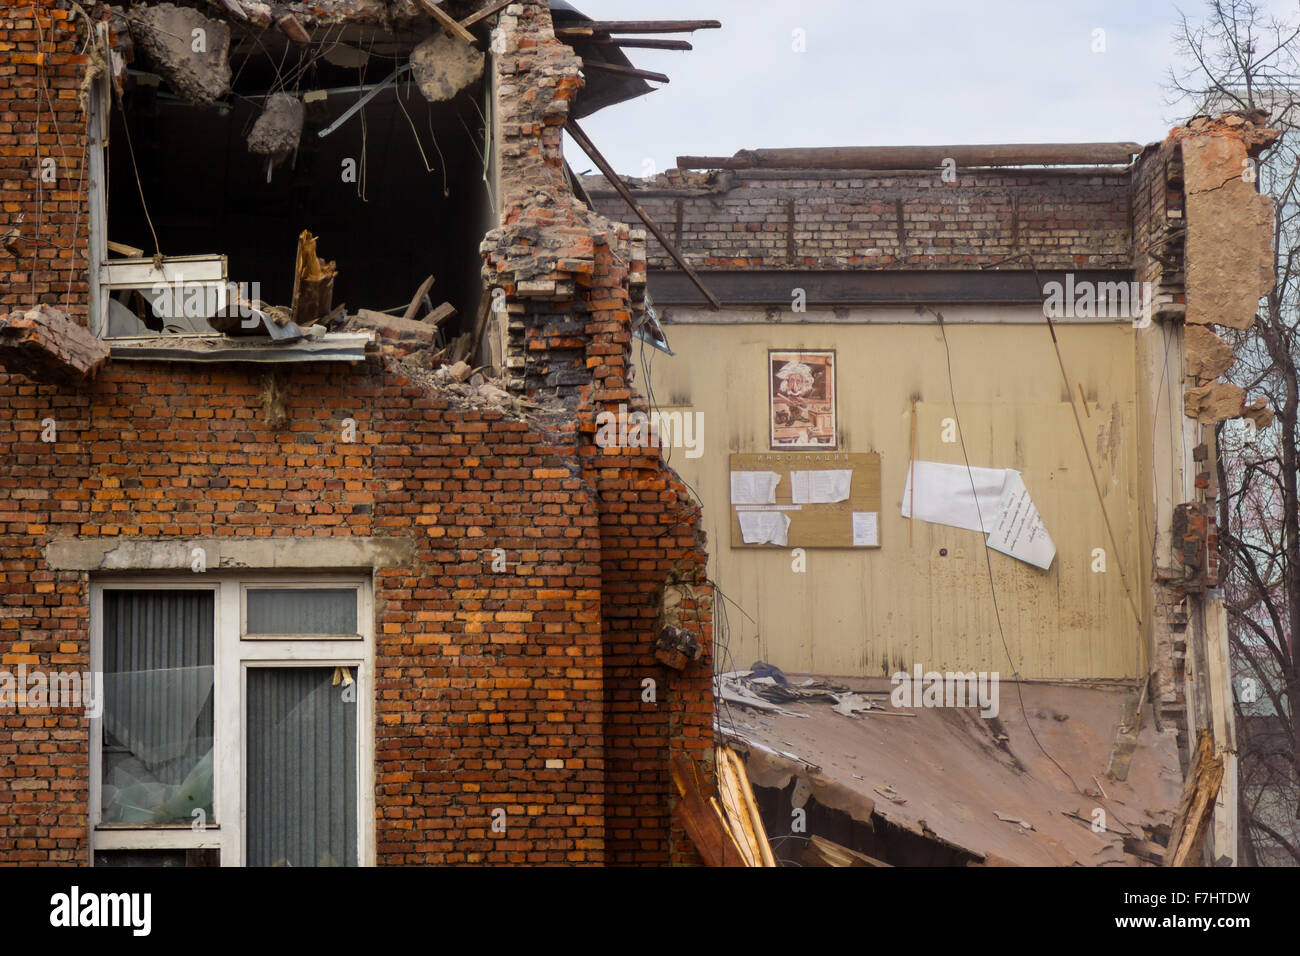 one of the last walls of a demolished school building with posters - Stock Image